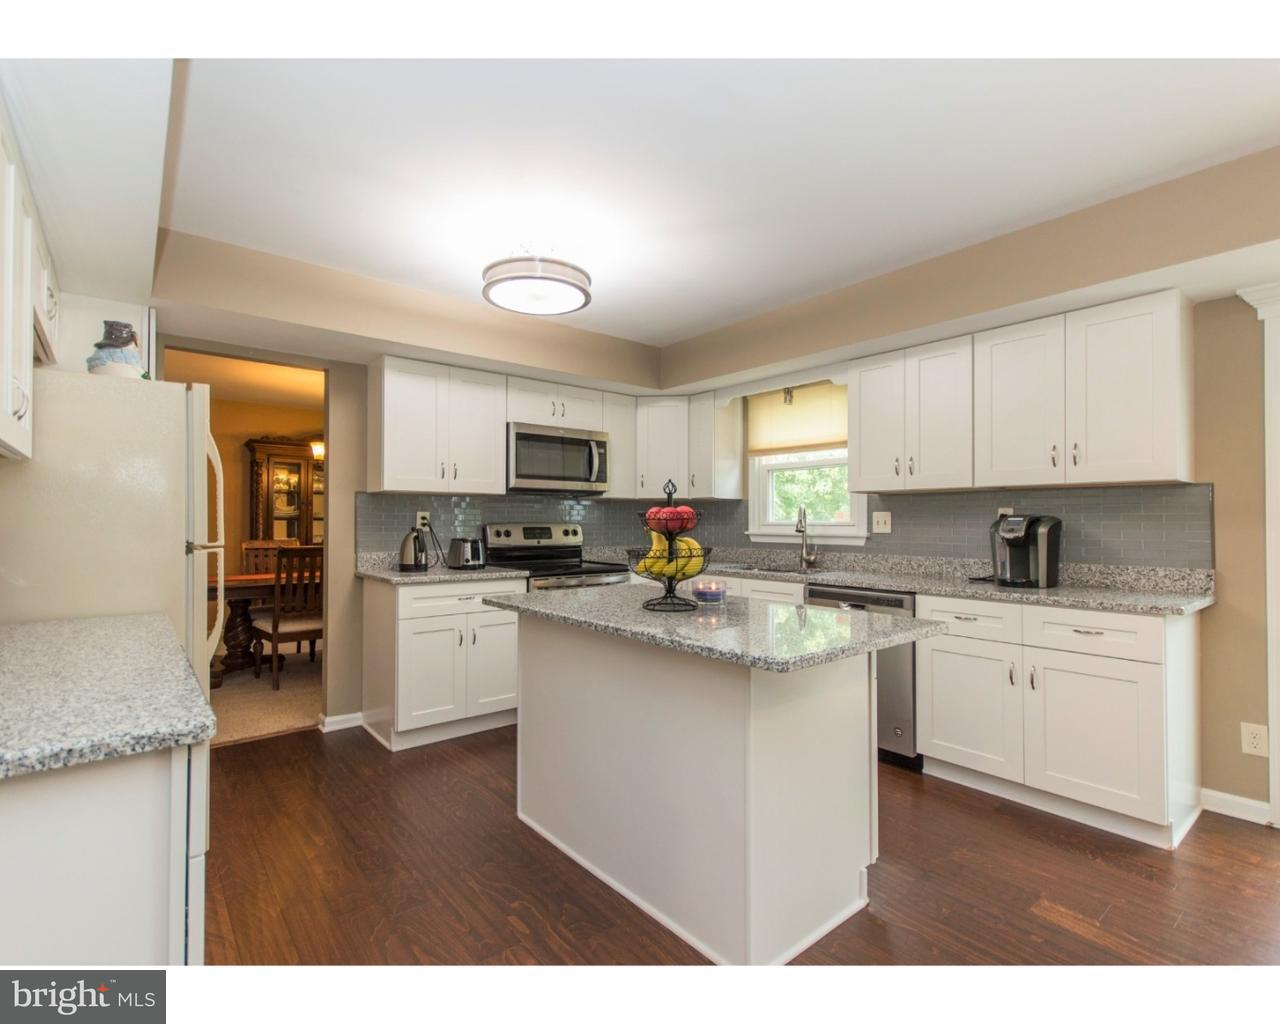 254 HOLLY DR, CHALFONT - Listed at $450,000, CHALFONT